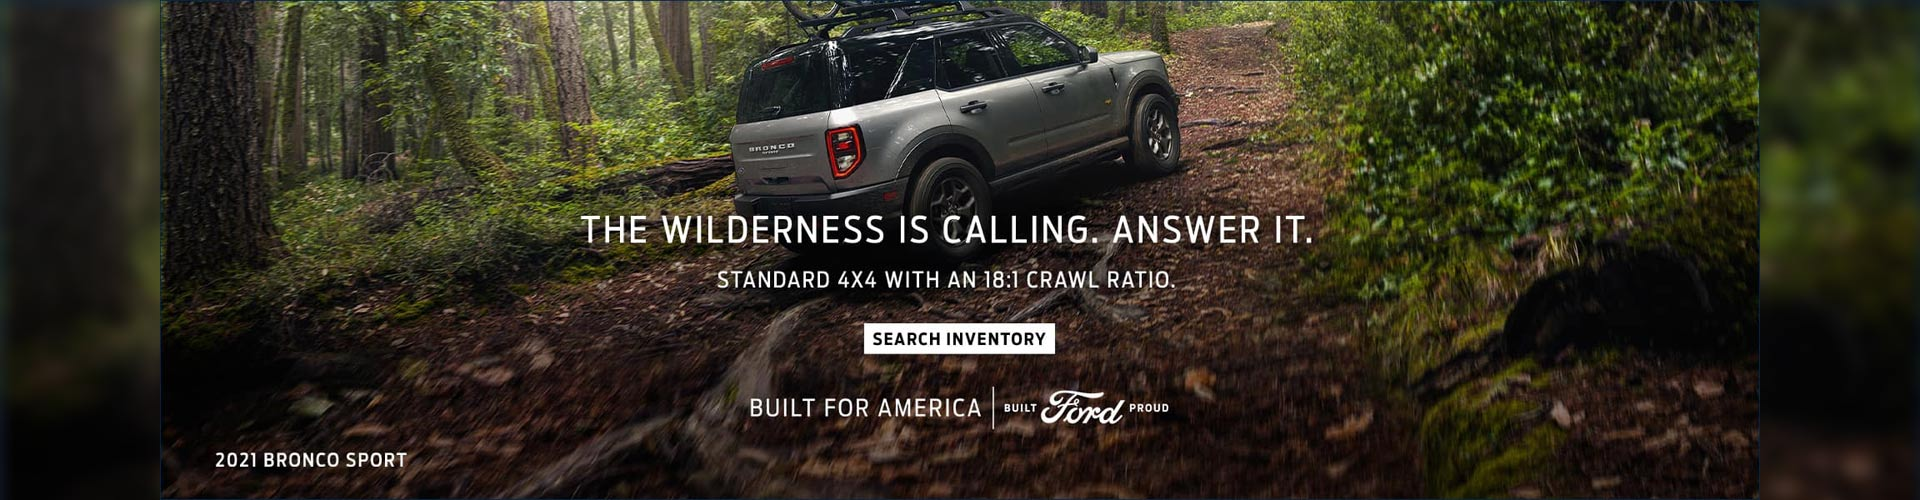 Wilderness is Calling - Ford